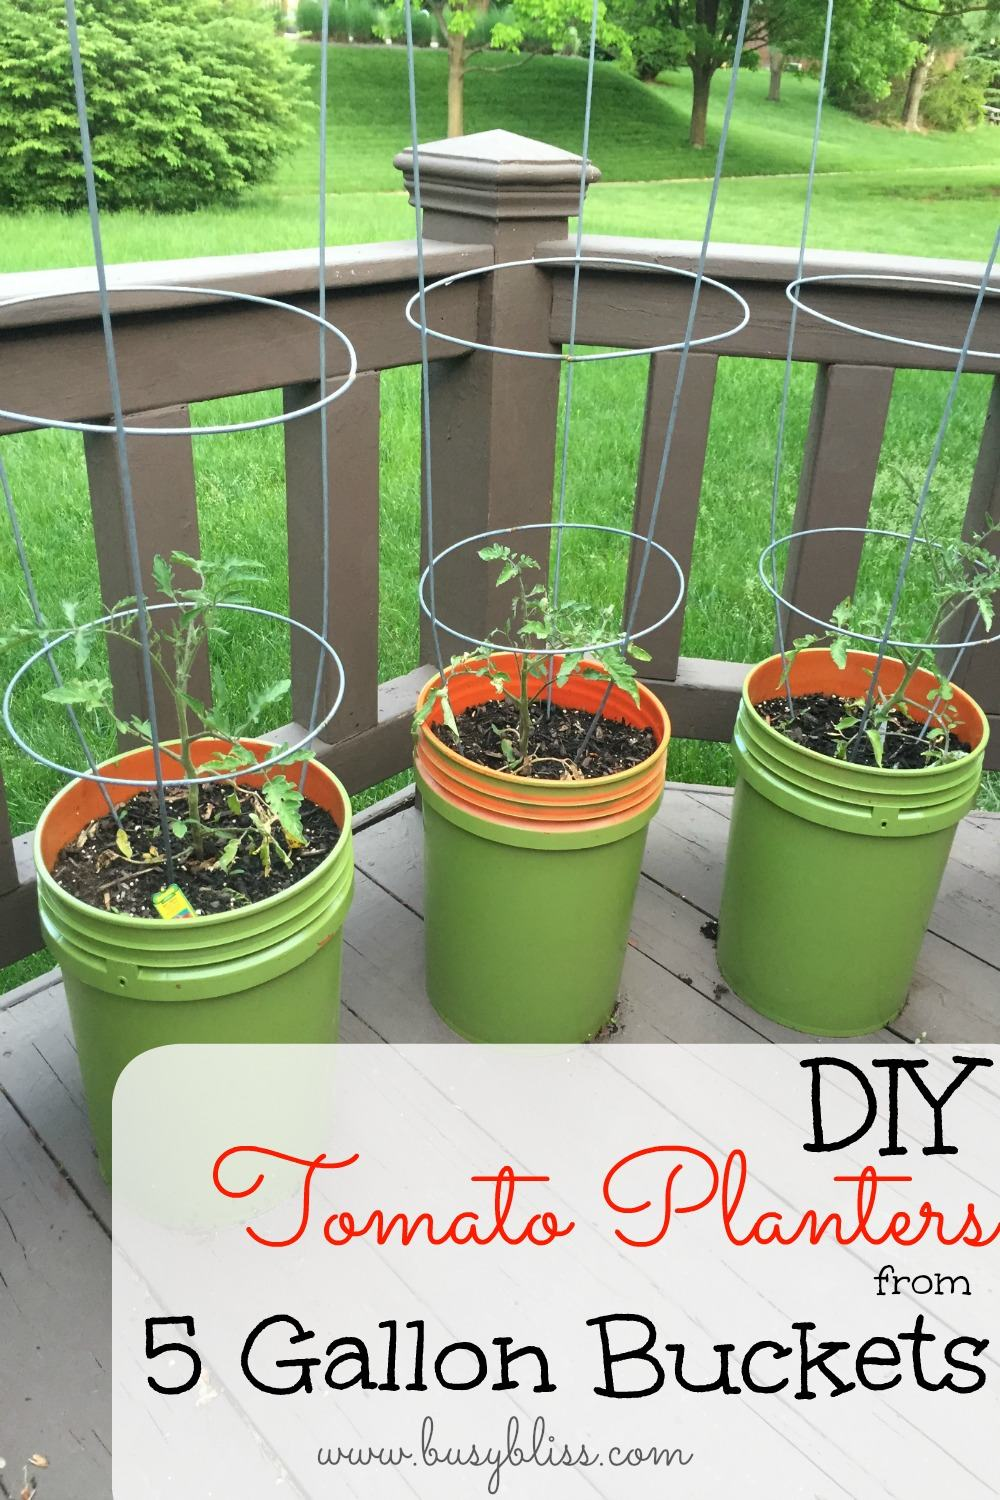 Diy Tomato Planters From 5 Gallon Buckets Busy Bliss